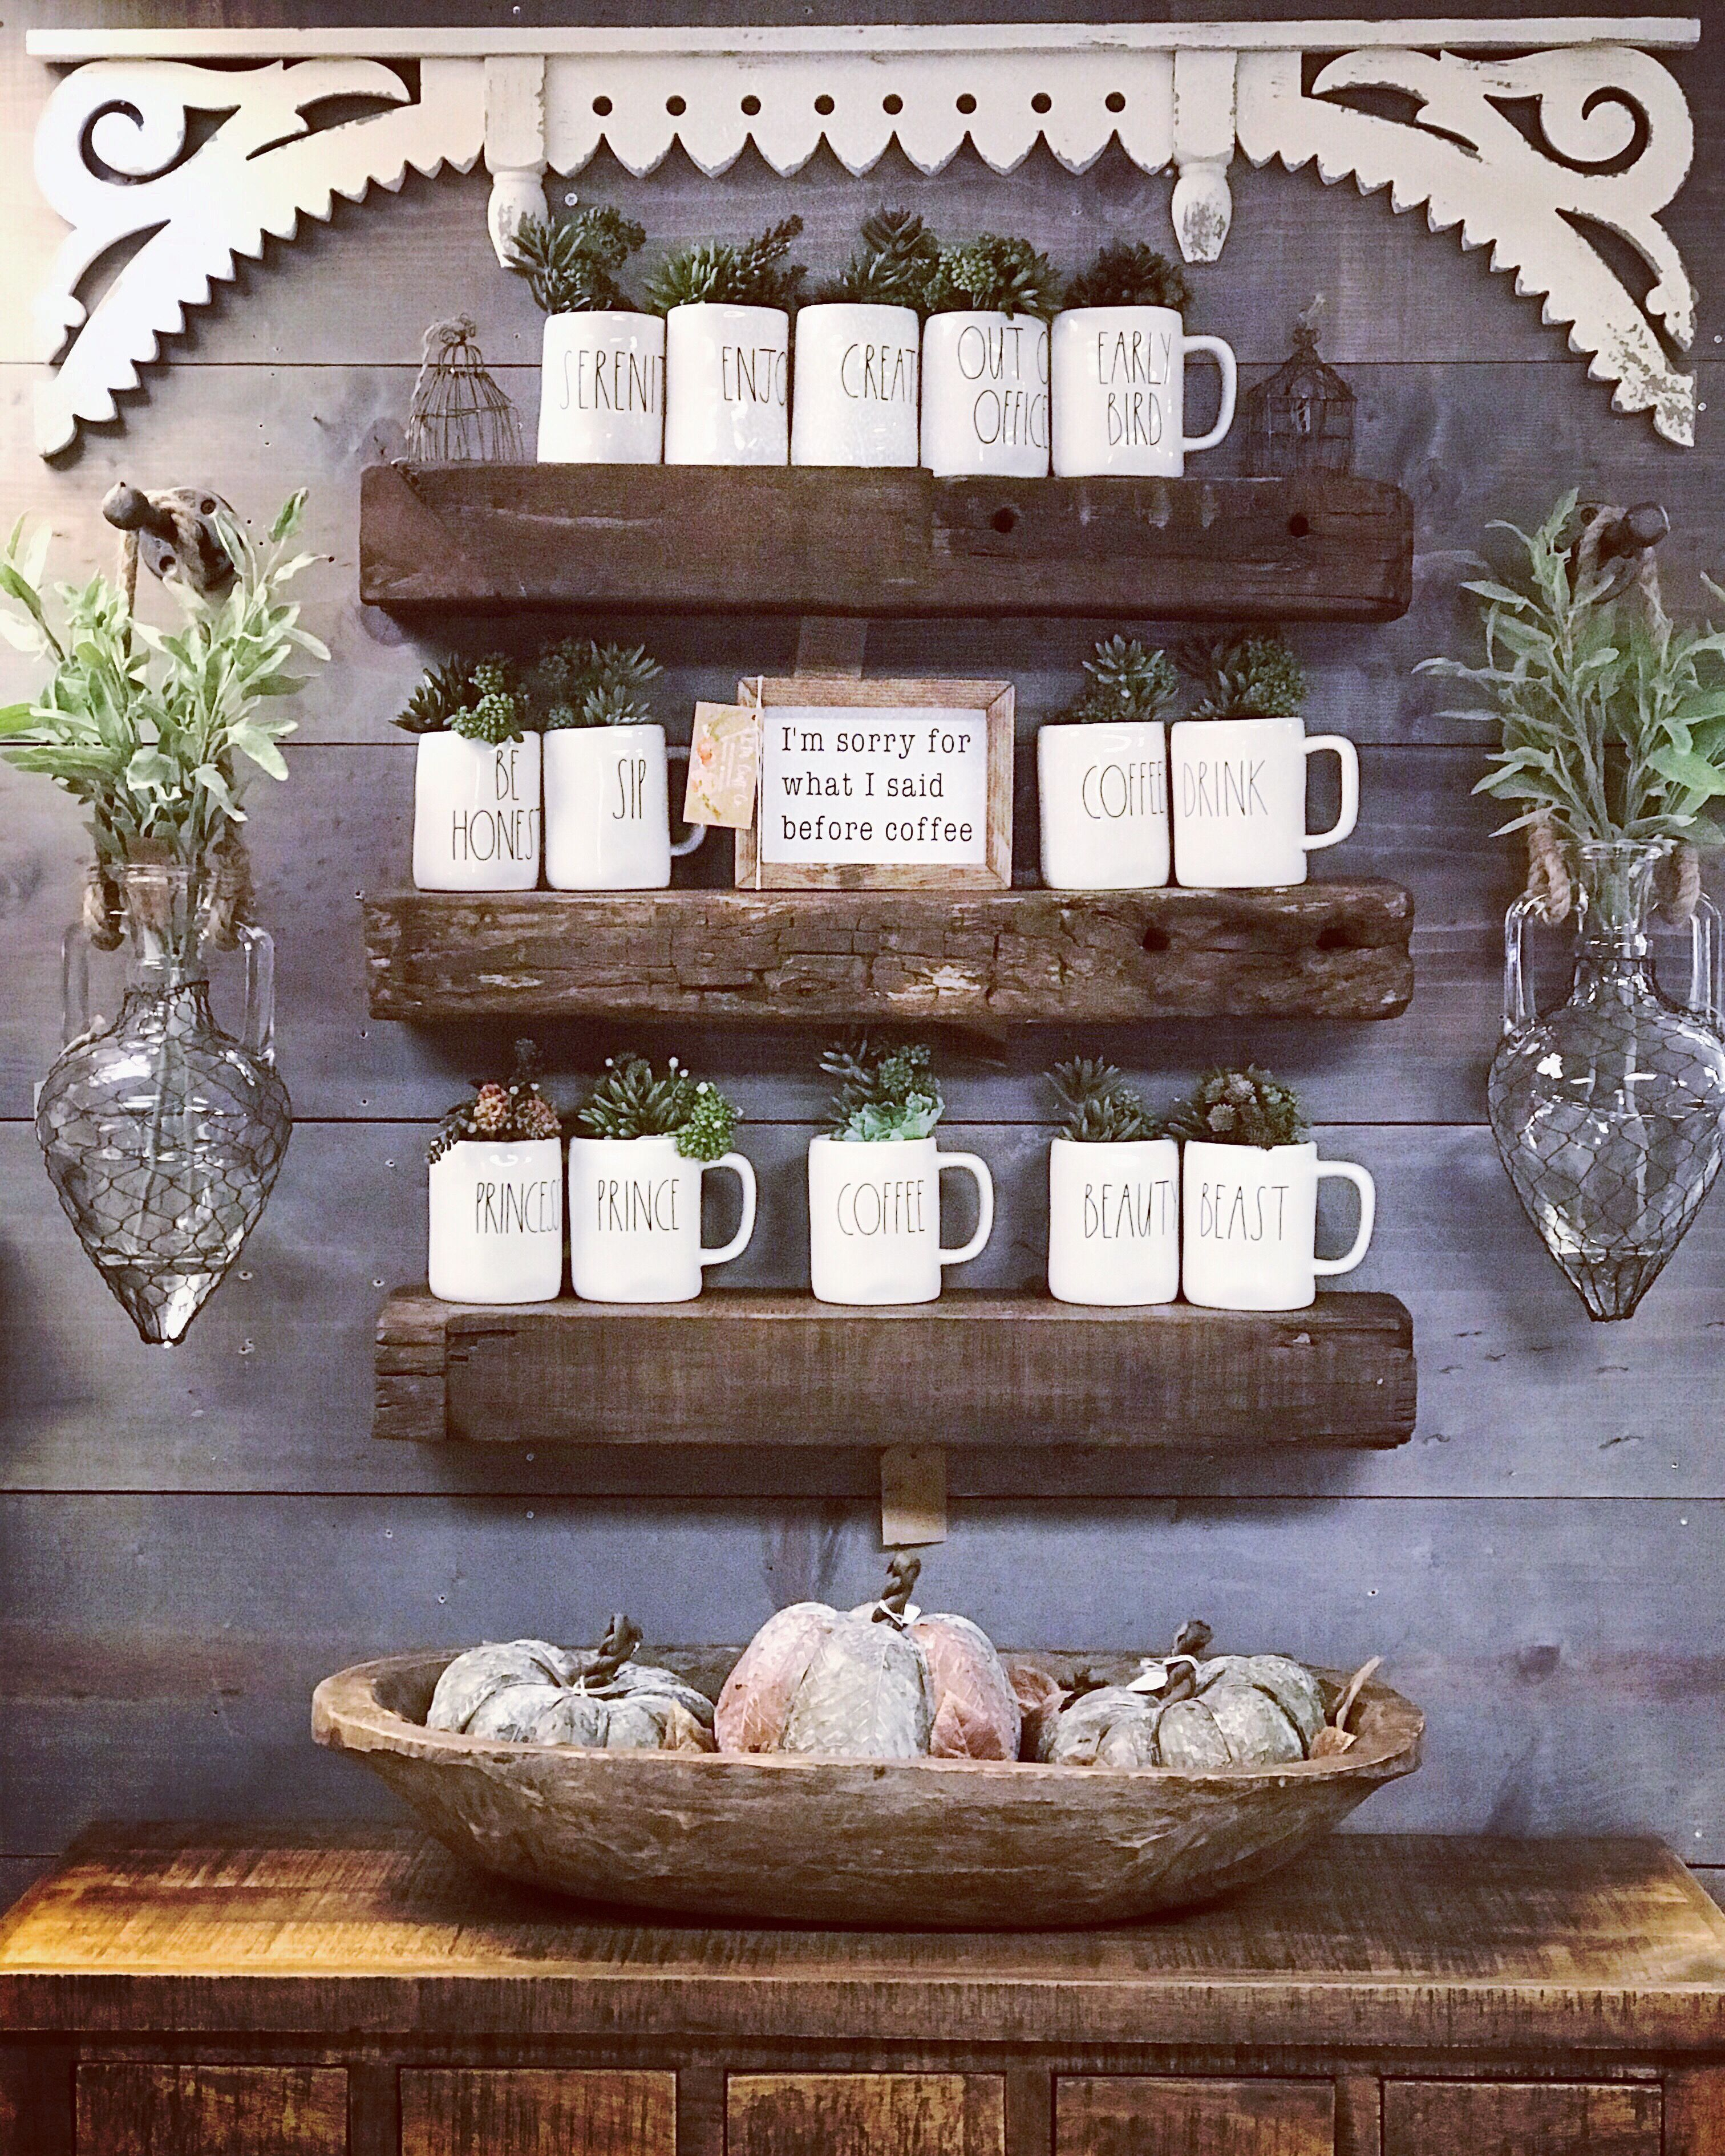 Newest Rae Dunn Display Design Ideas To Make Beautiful Decor In Your Home08